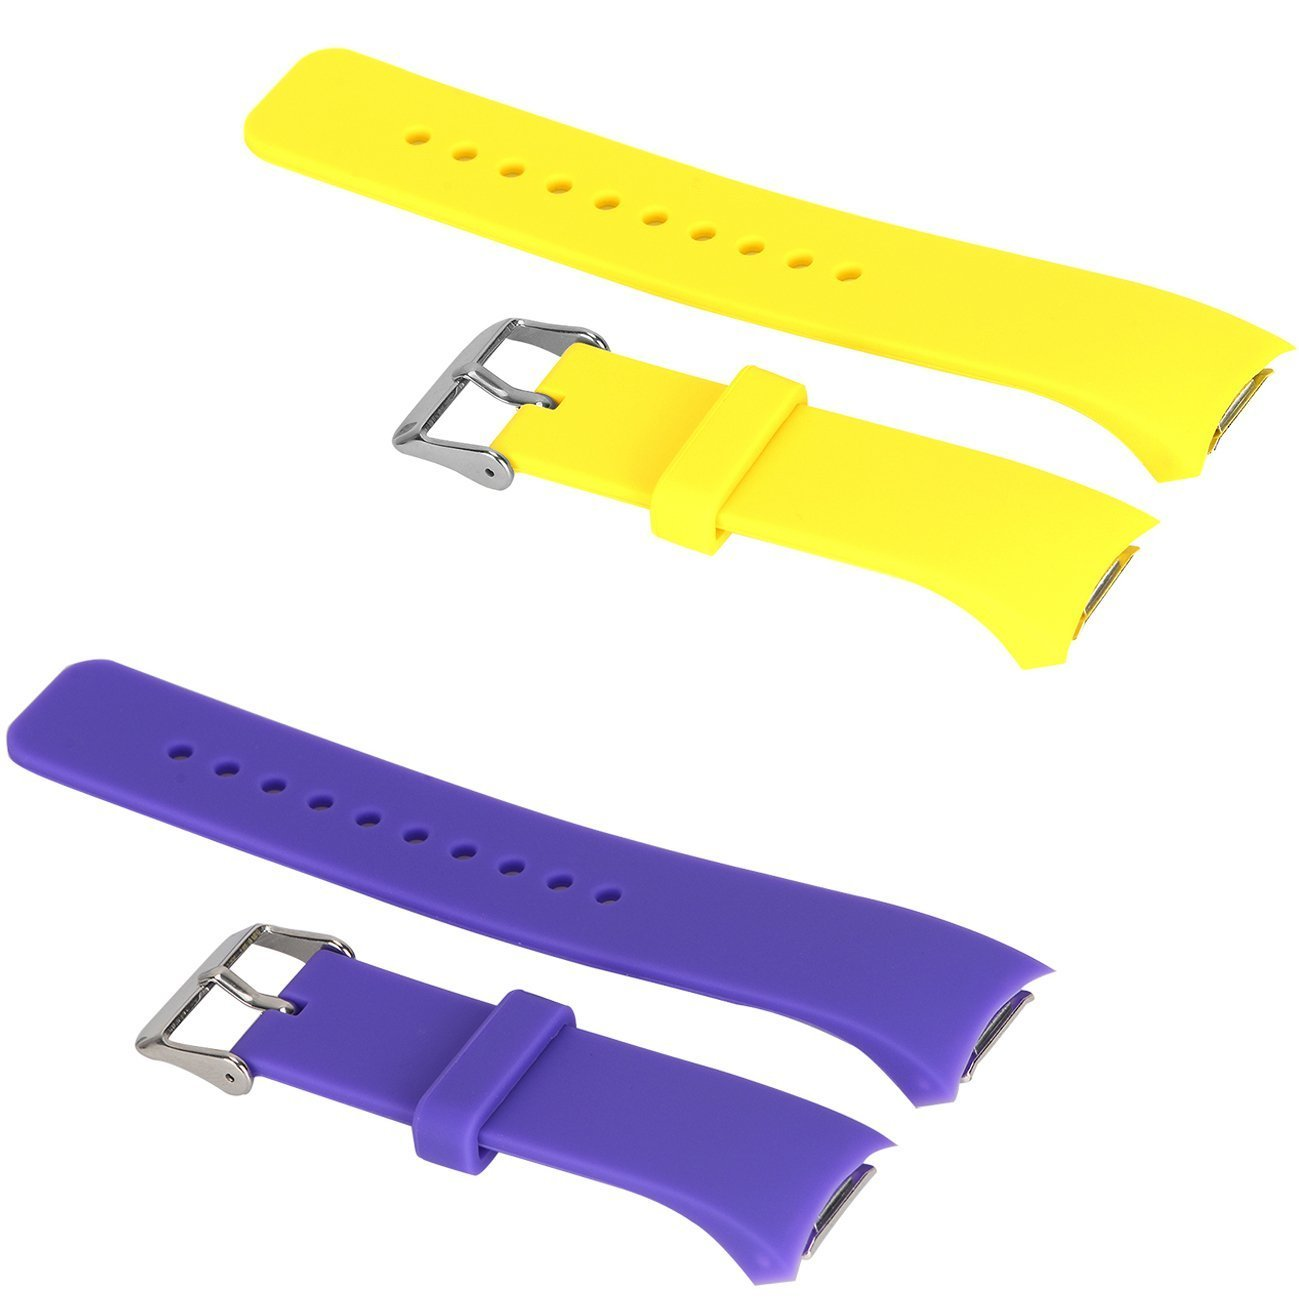 2pcs Large Bands for Gear Fit2 Pro Watch, Replacement Soft Silicone Bands Straps for Samsung Gear Fit2 Pro Smart Fitness Band and Samsung Gear Fit2 Smartwatch : Purple+Yellow